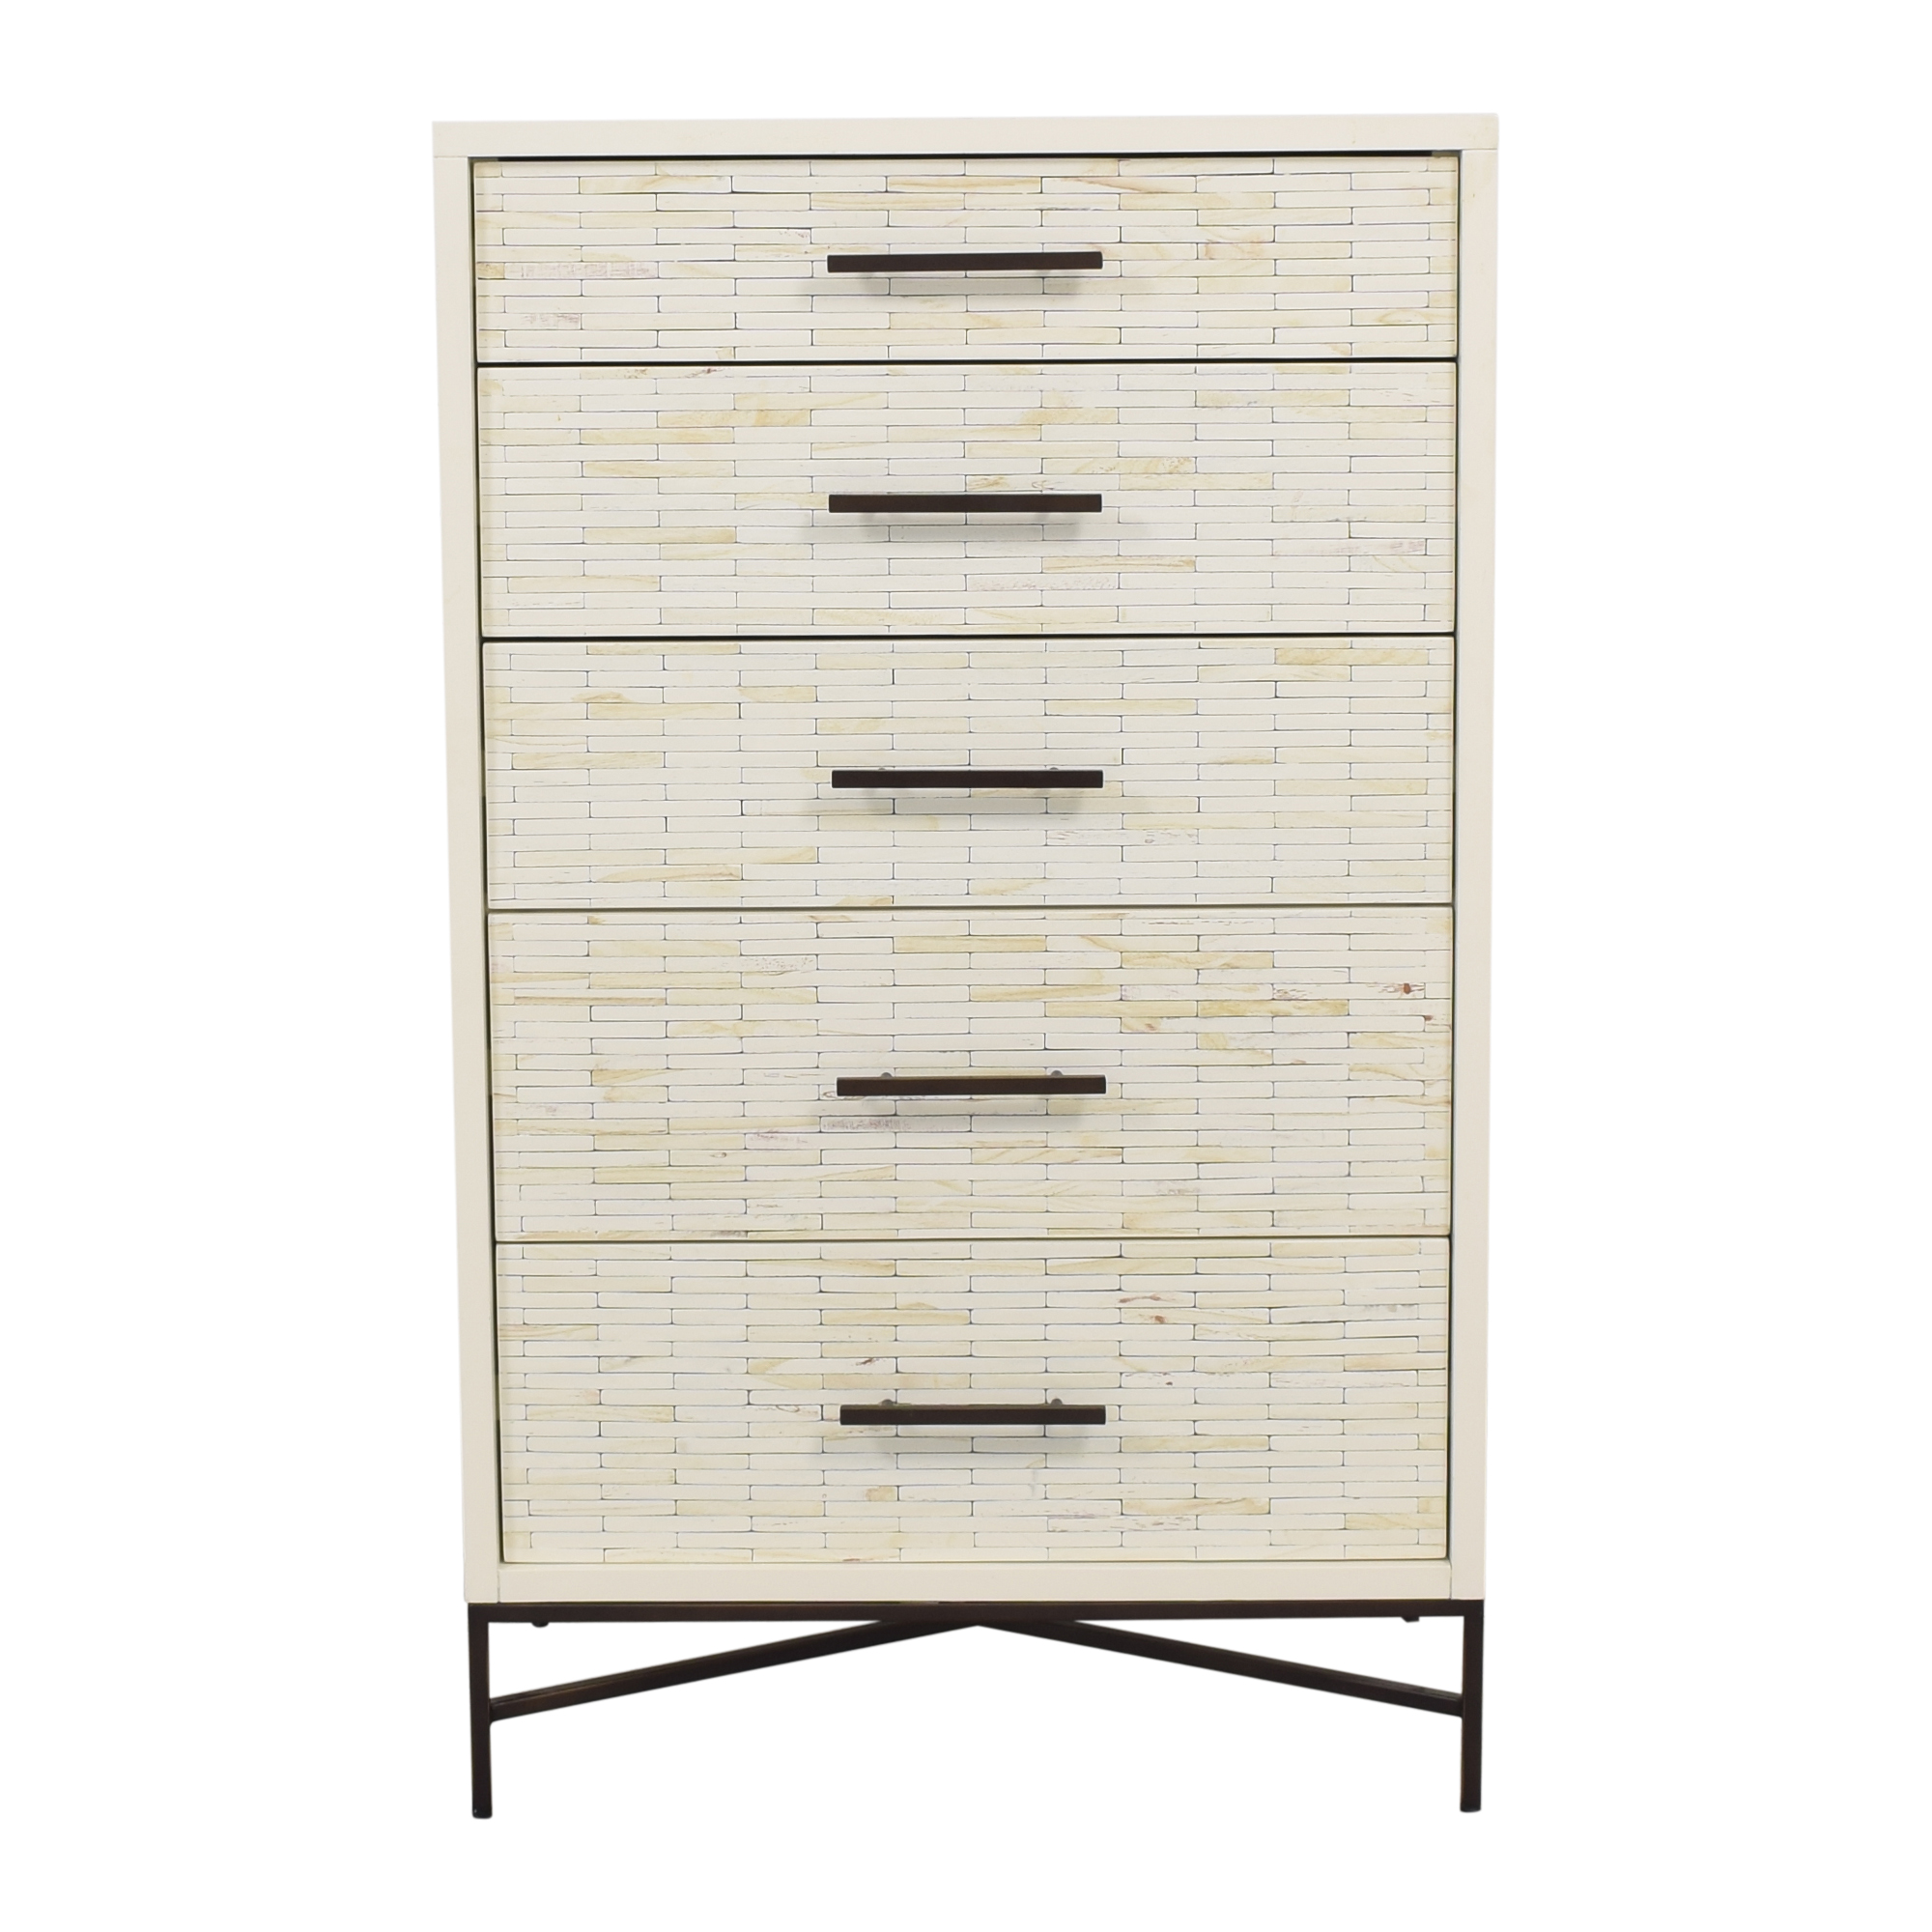 West Elm West Elm Wood Tiled 5-Drawer Dresser ct